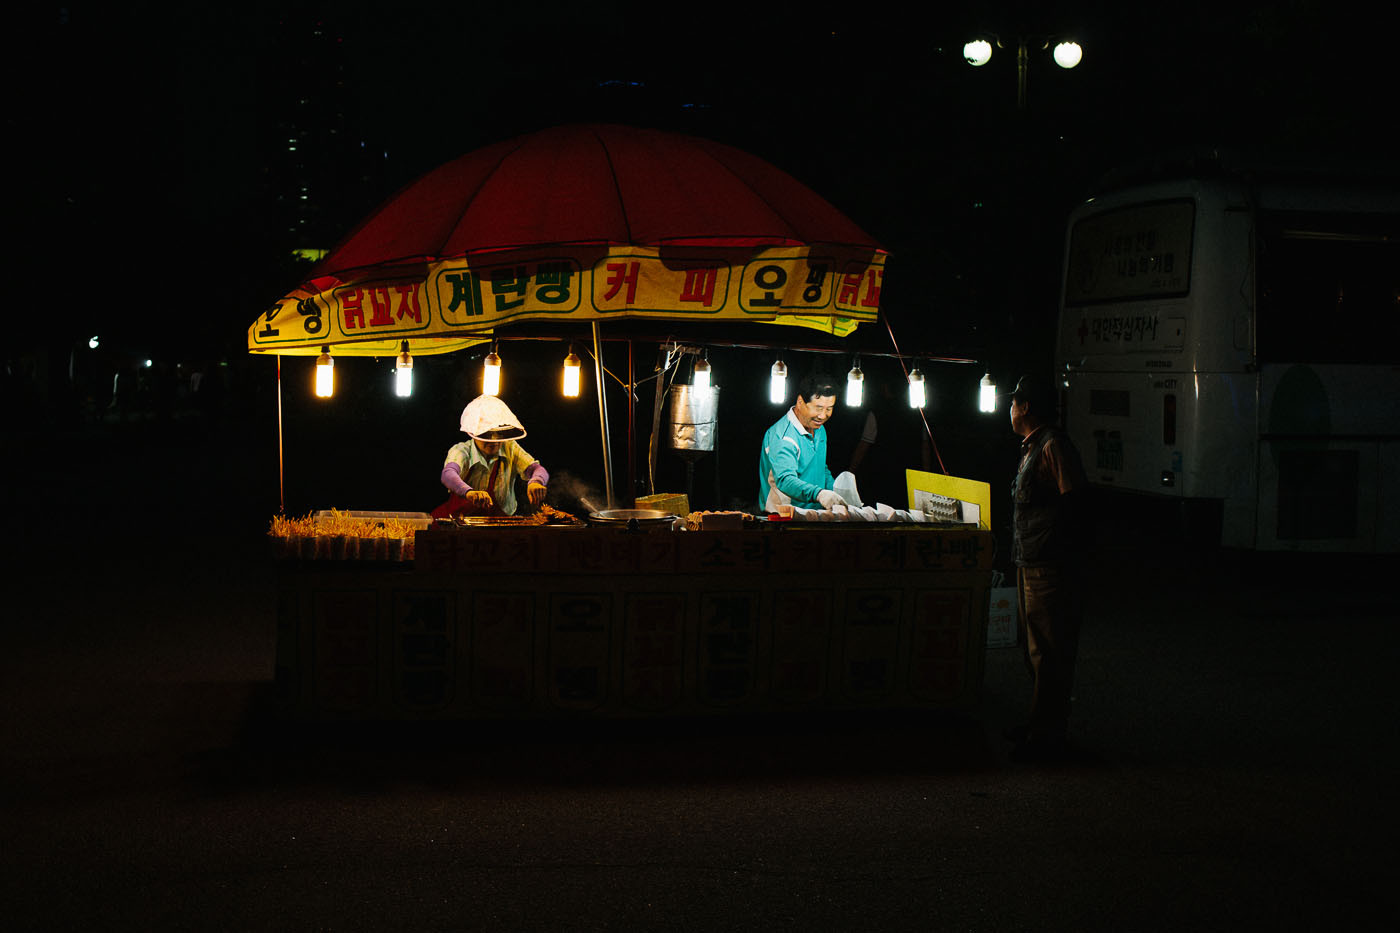 Food vendors at night in Seoul, South Korea